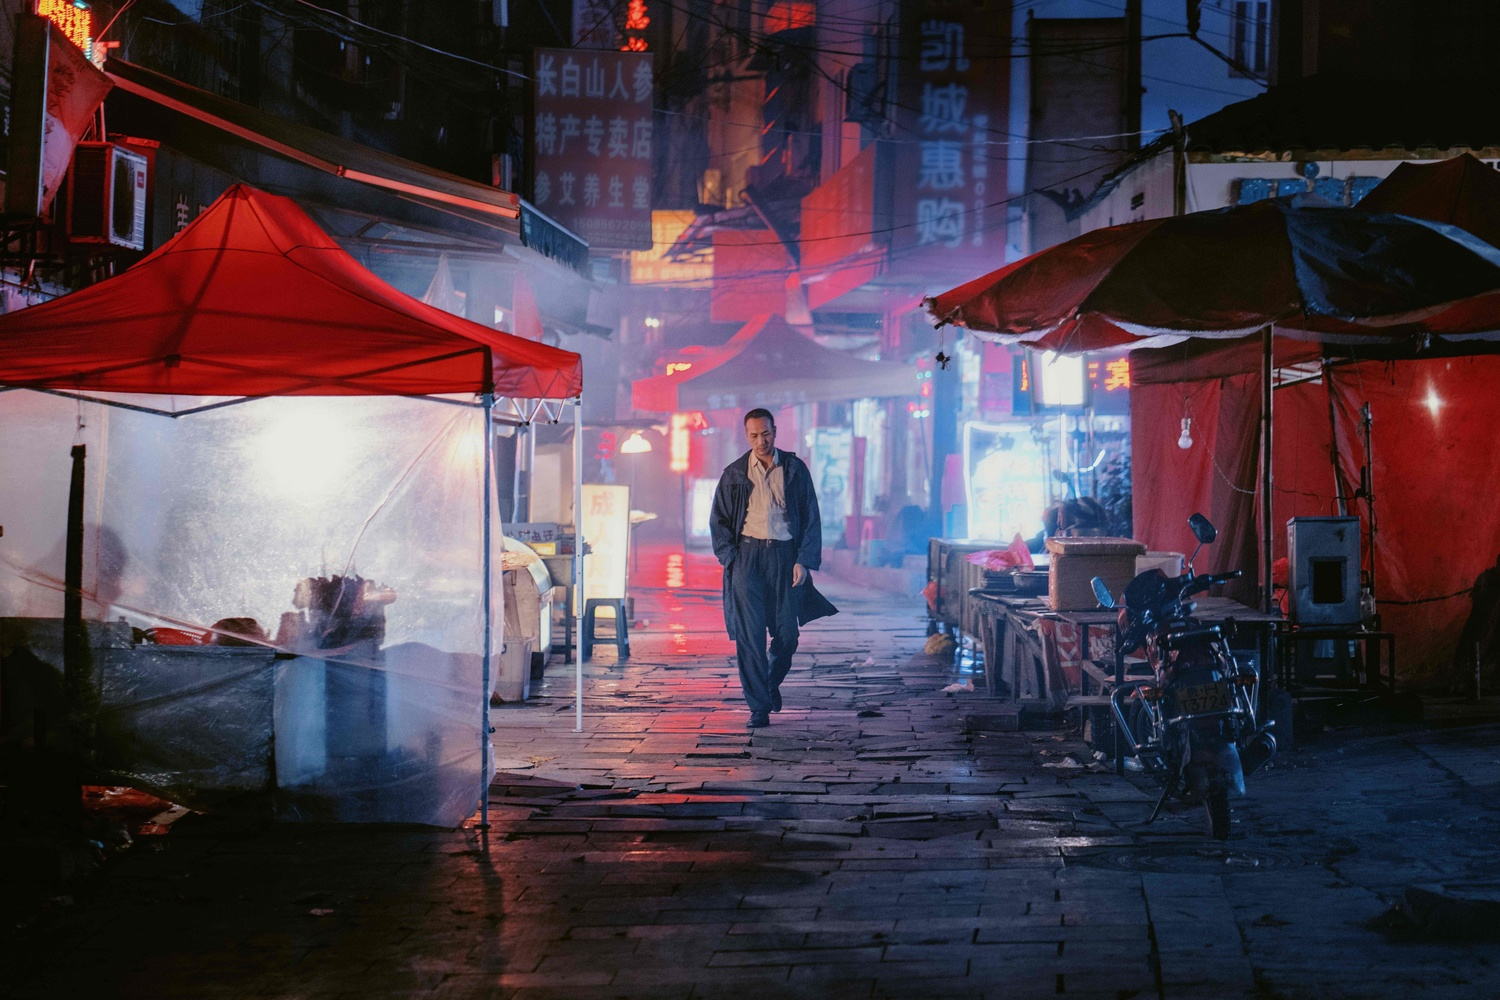 Long Day's Journey Into Night. 2018. China/France. Directed by Bi Gan. Courtesy Kino Lorber